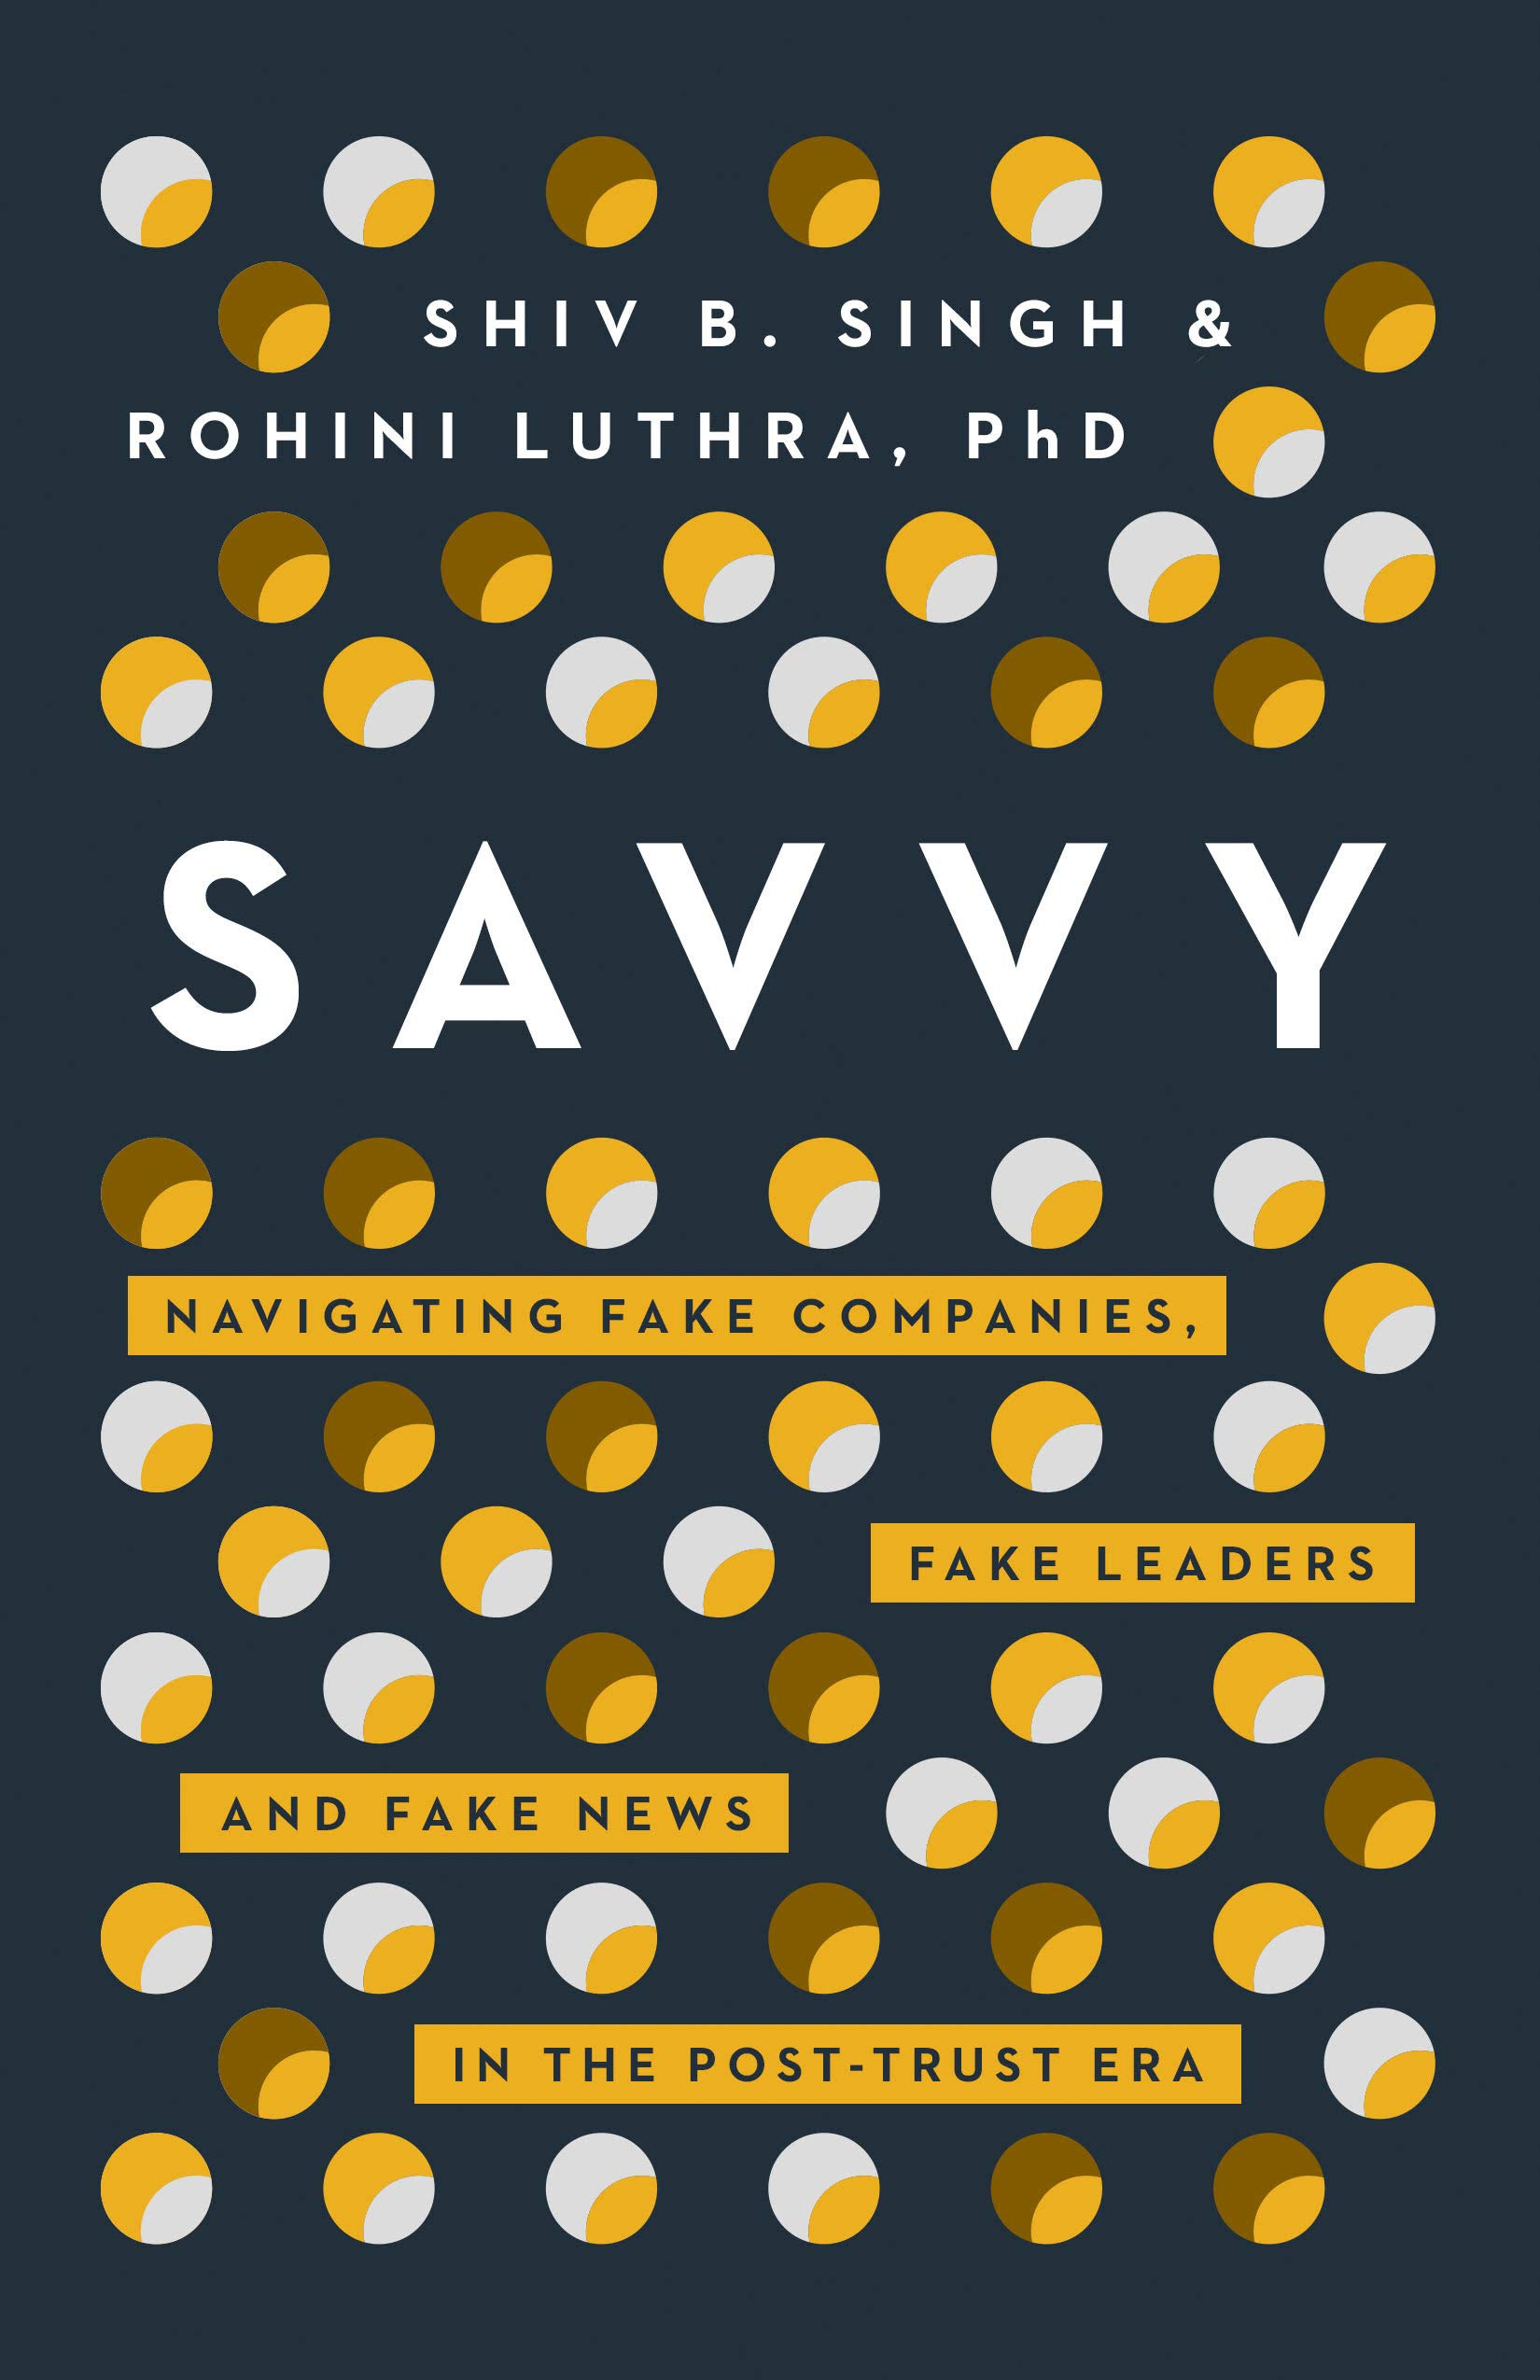 Savvy: Navigating Fake Companies, Fake Leaders and Fake News in the Post-Trust Era